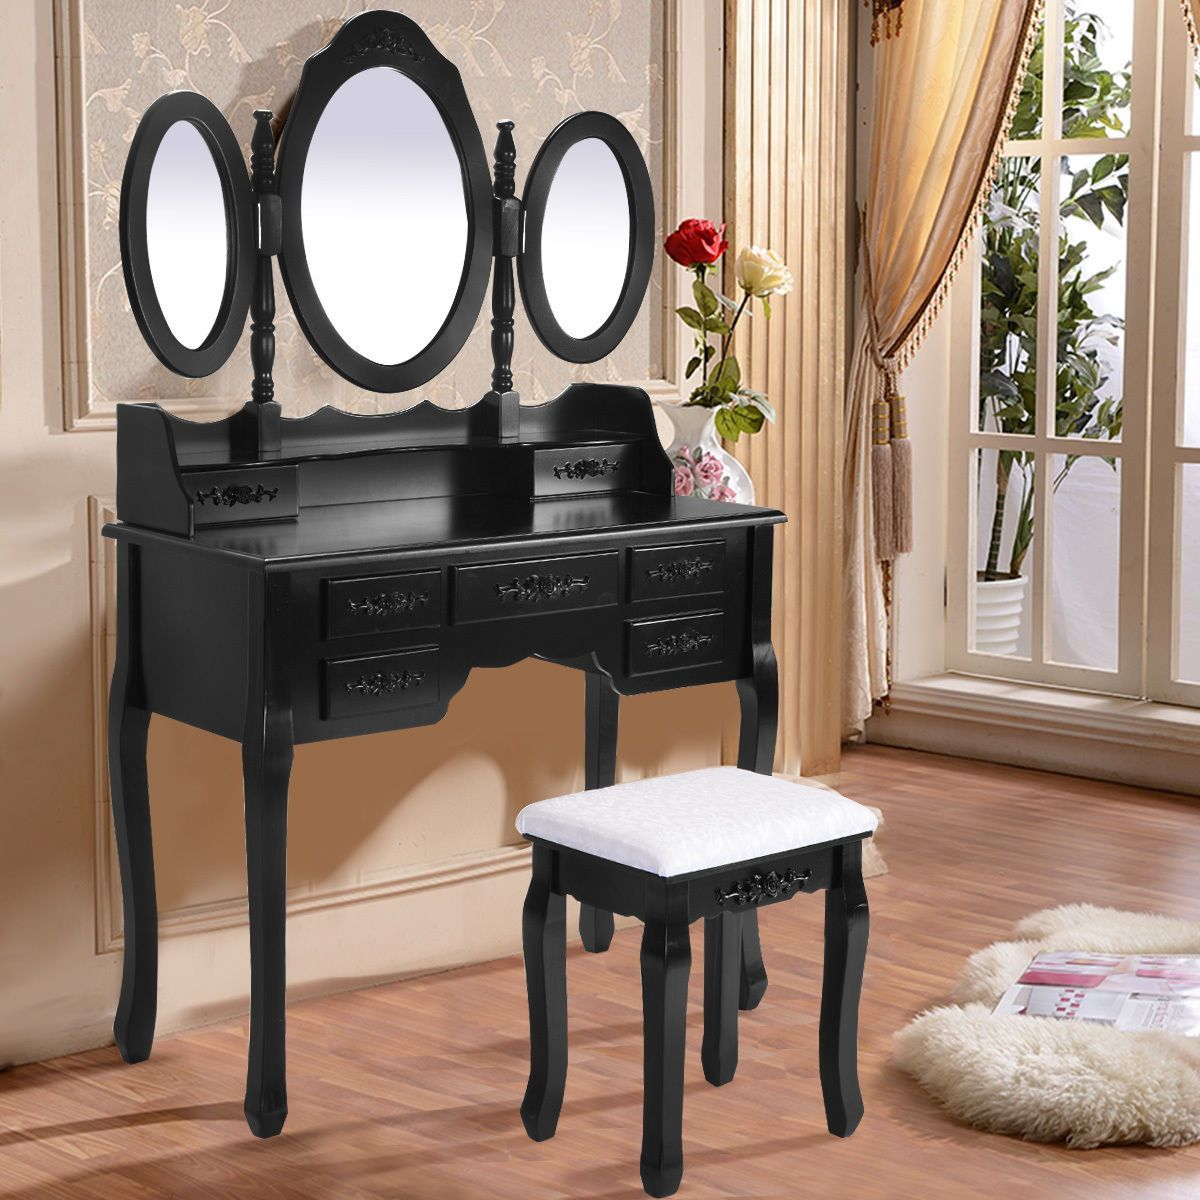 60 OFF Vanity Makeup Dressing Table W/ Tri Folding Mirror